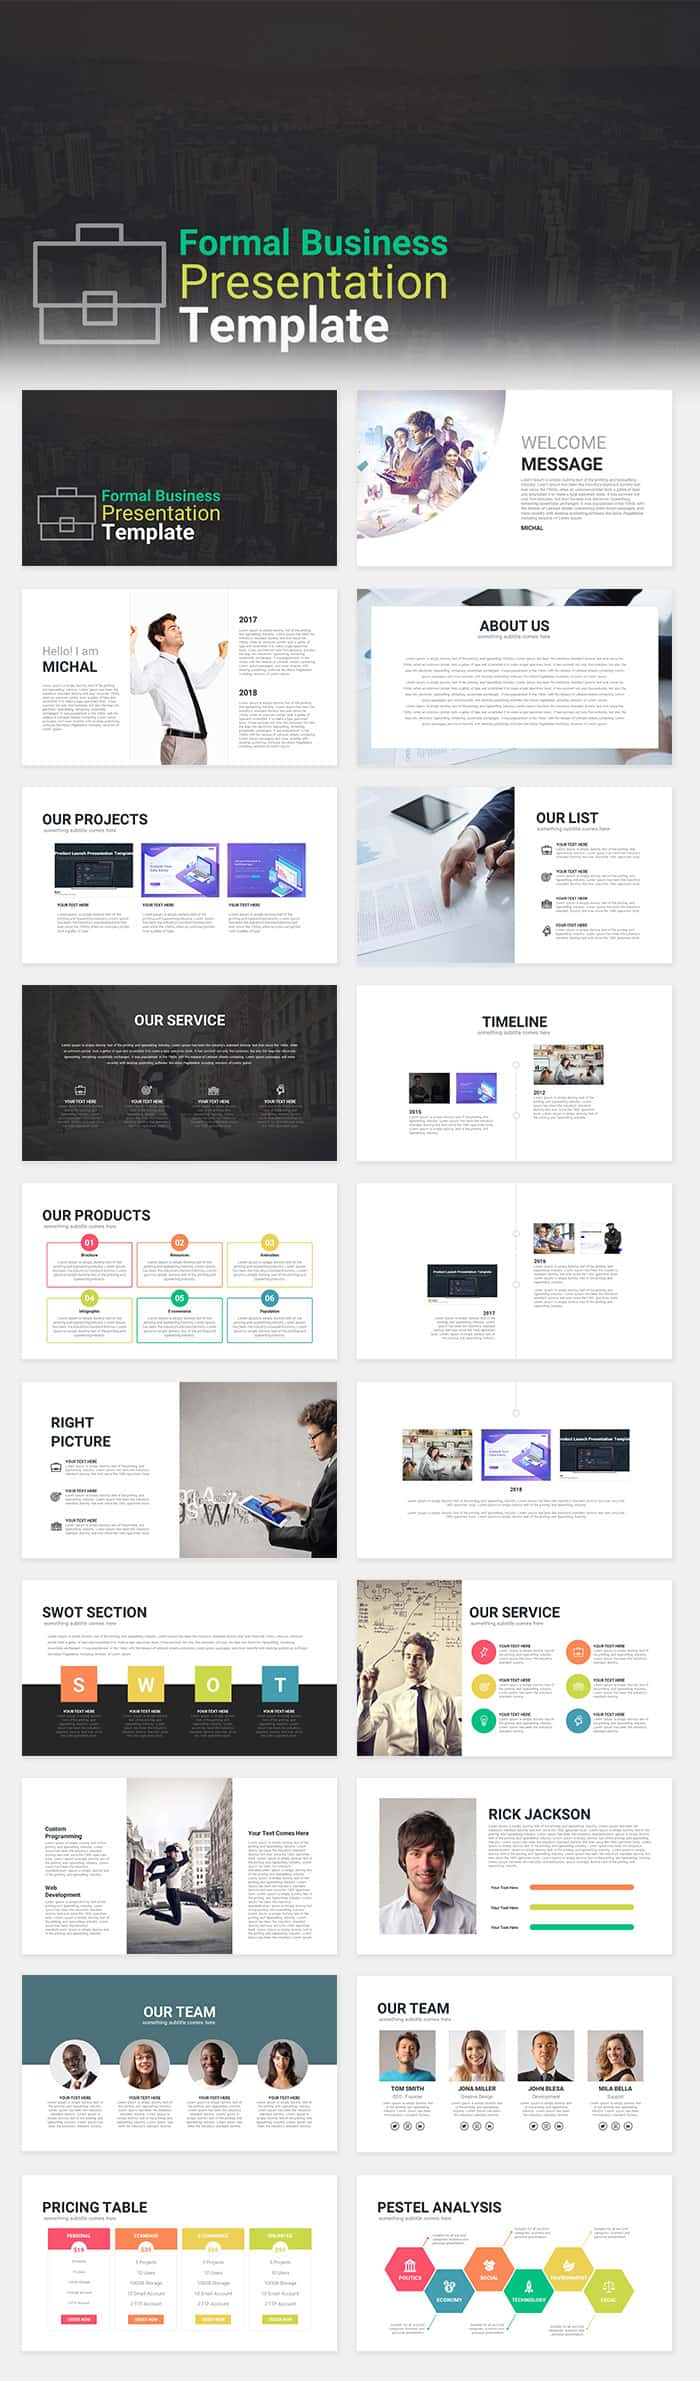 Formal Business Presentation Template For Powerpoint Keynote